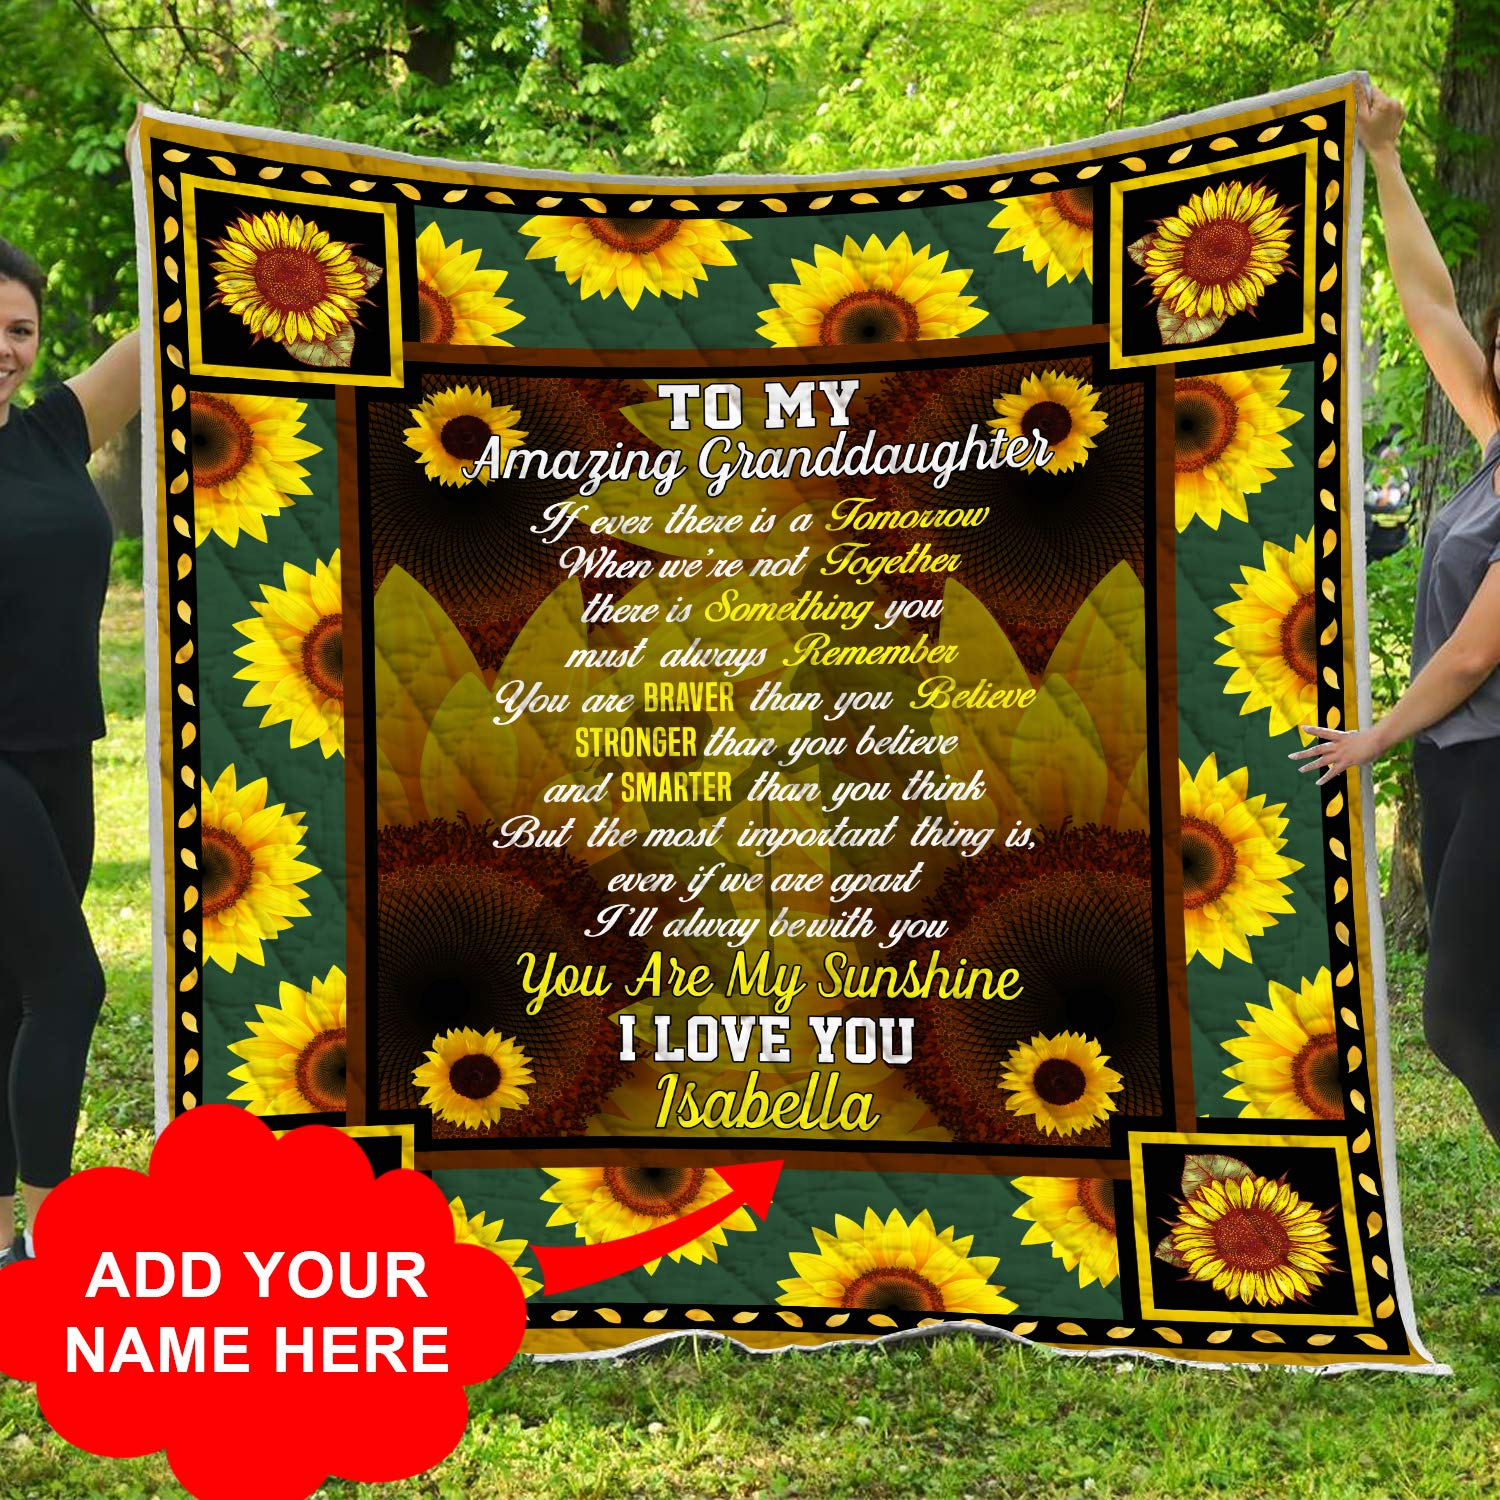 Personalized To My Granddaughter You Are My Sunshine Sunflower Quilt Blanket Quilted Customized Christmas Birthday Little Girl Gifts from Grandparents Grandmother Grandma Grandfather Grandpa Papa Nana by VTH Global